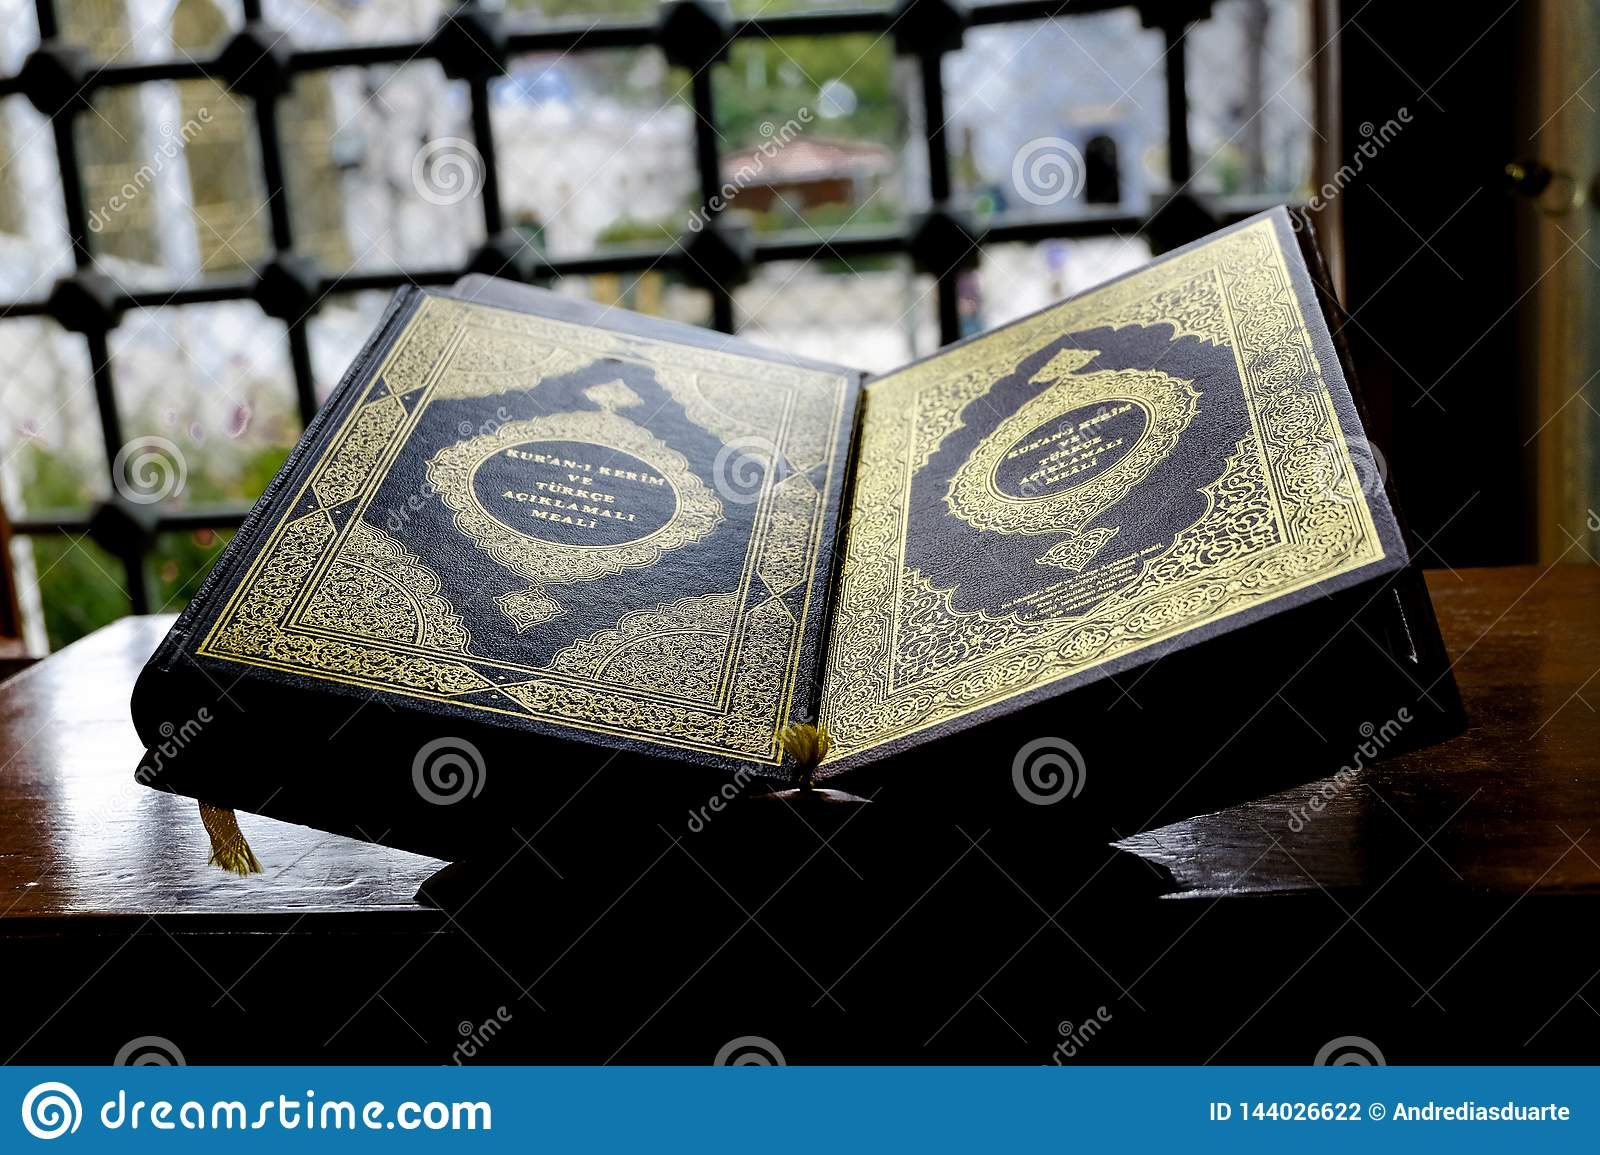 Muslim Quran book on a stand